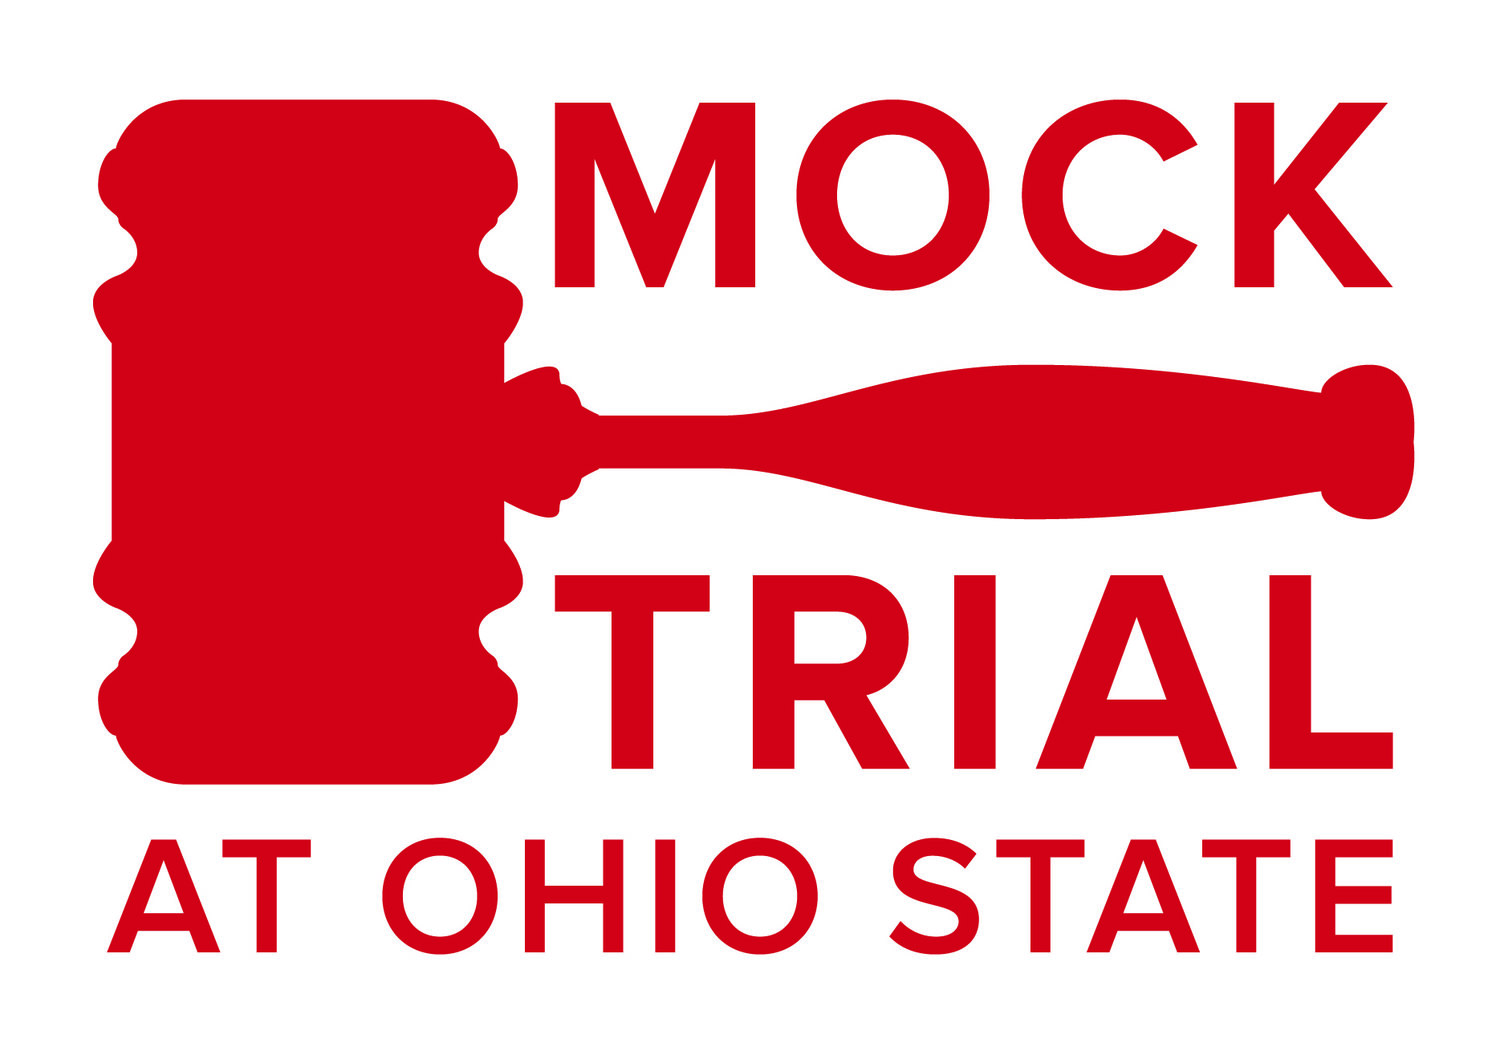 Mock Trial at Ohio State